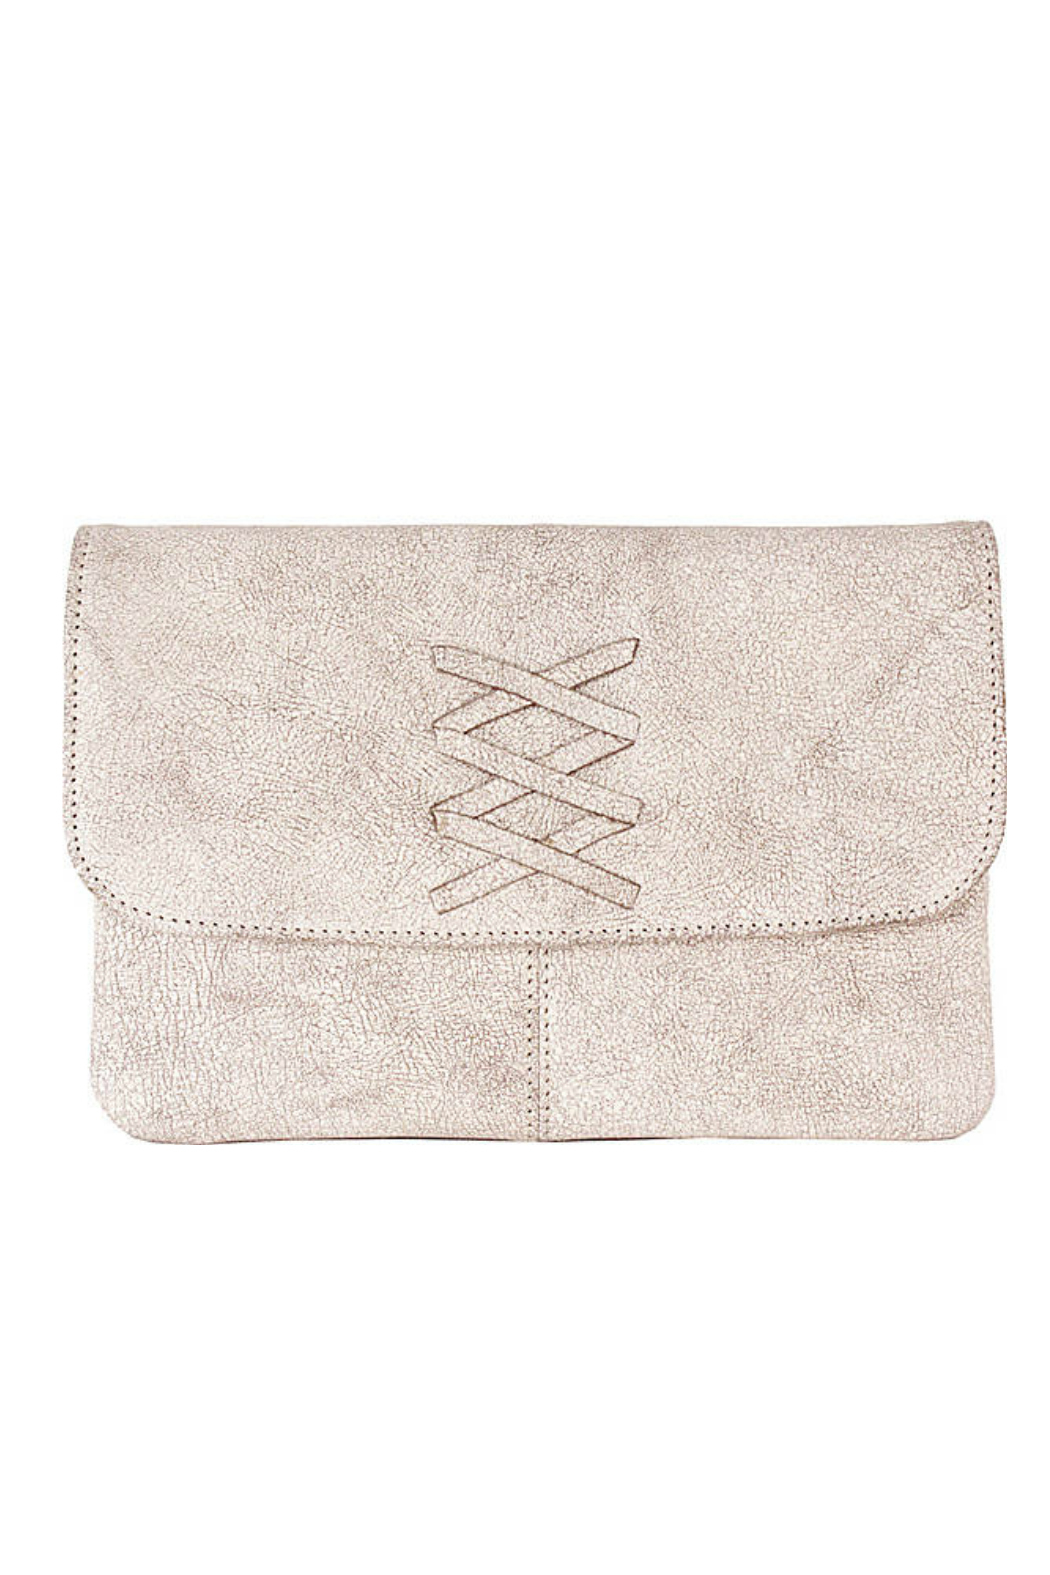 Latico Leathers Meredith Crossbody Clutch - Main Image